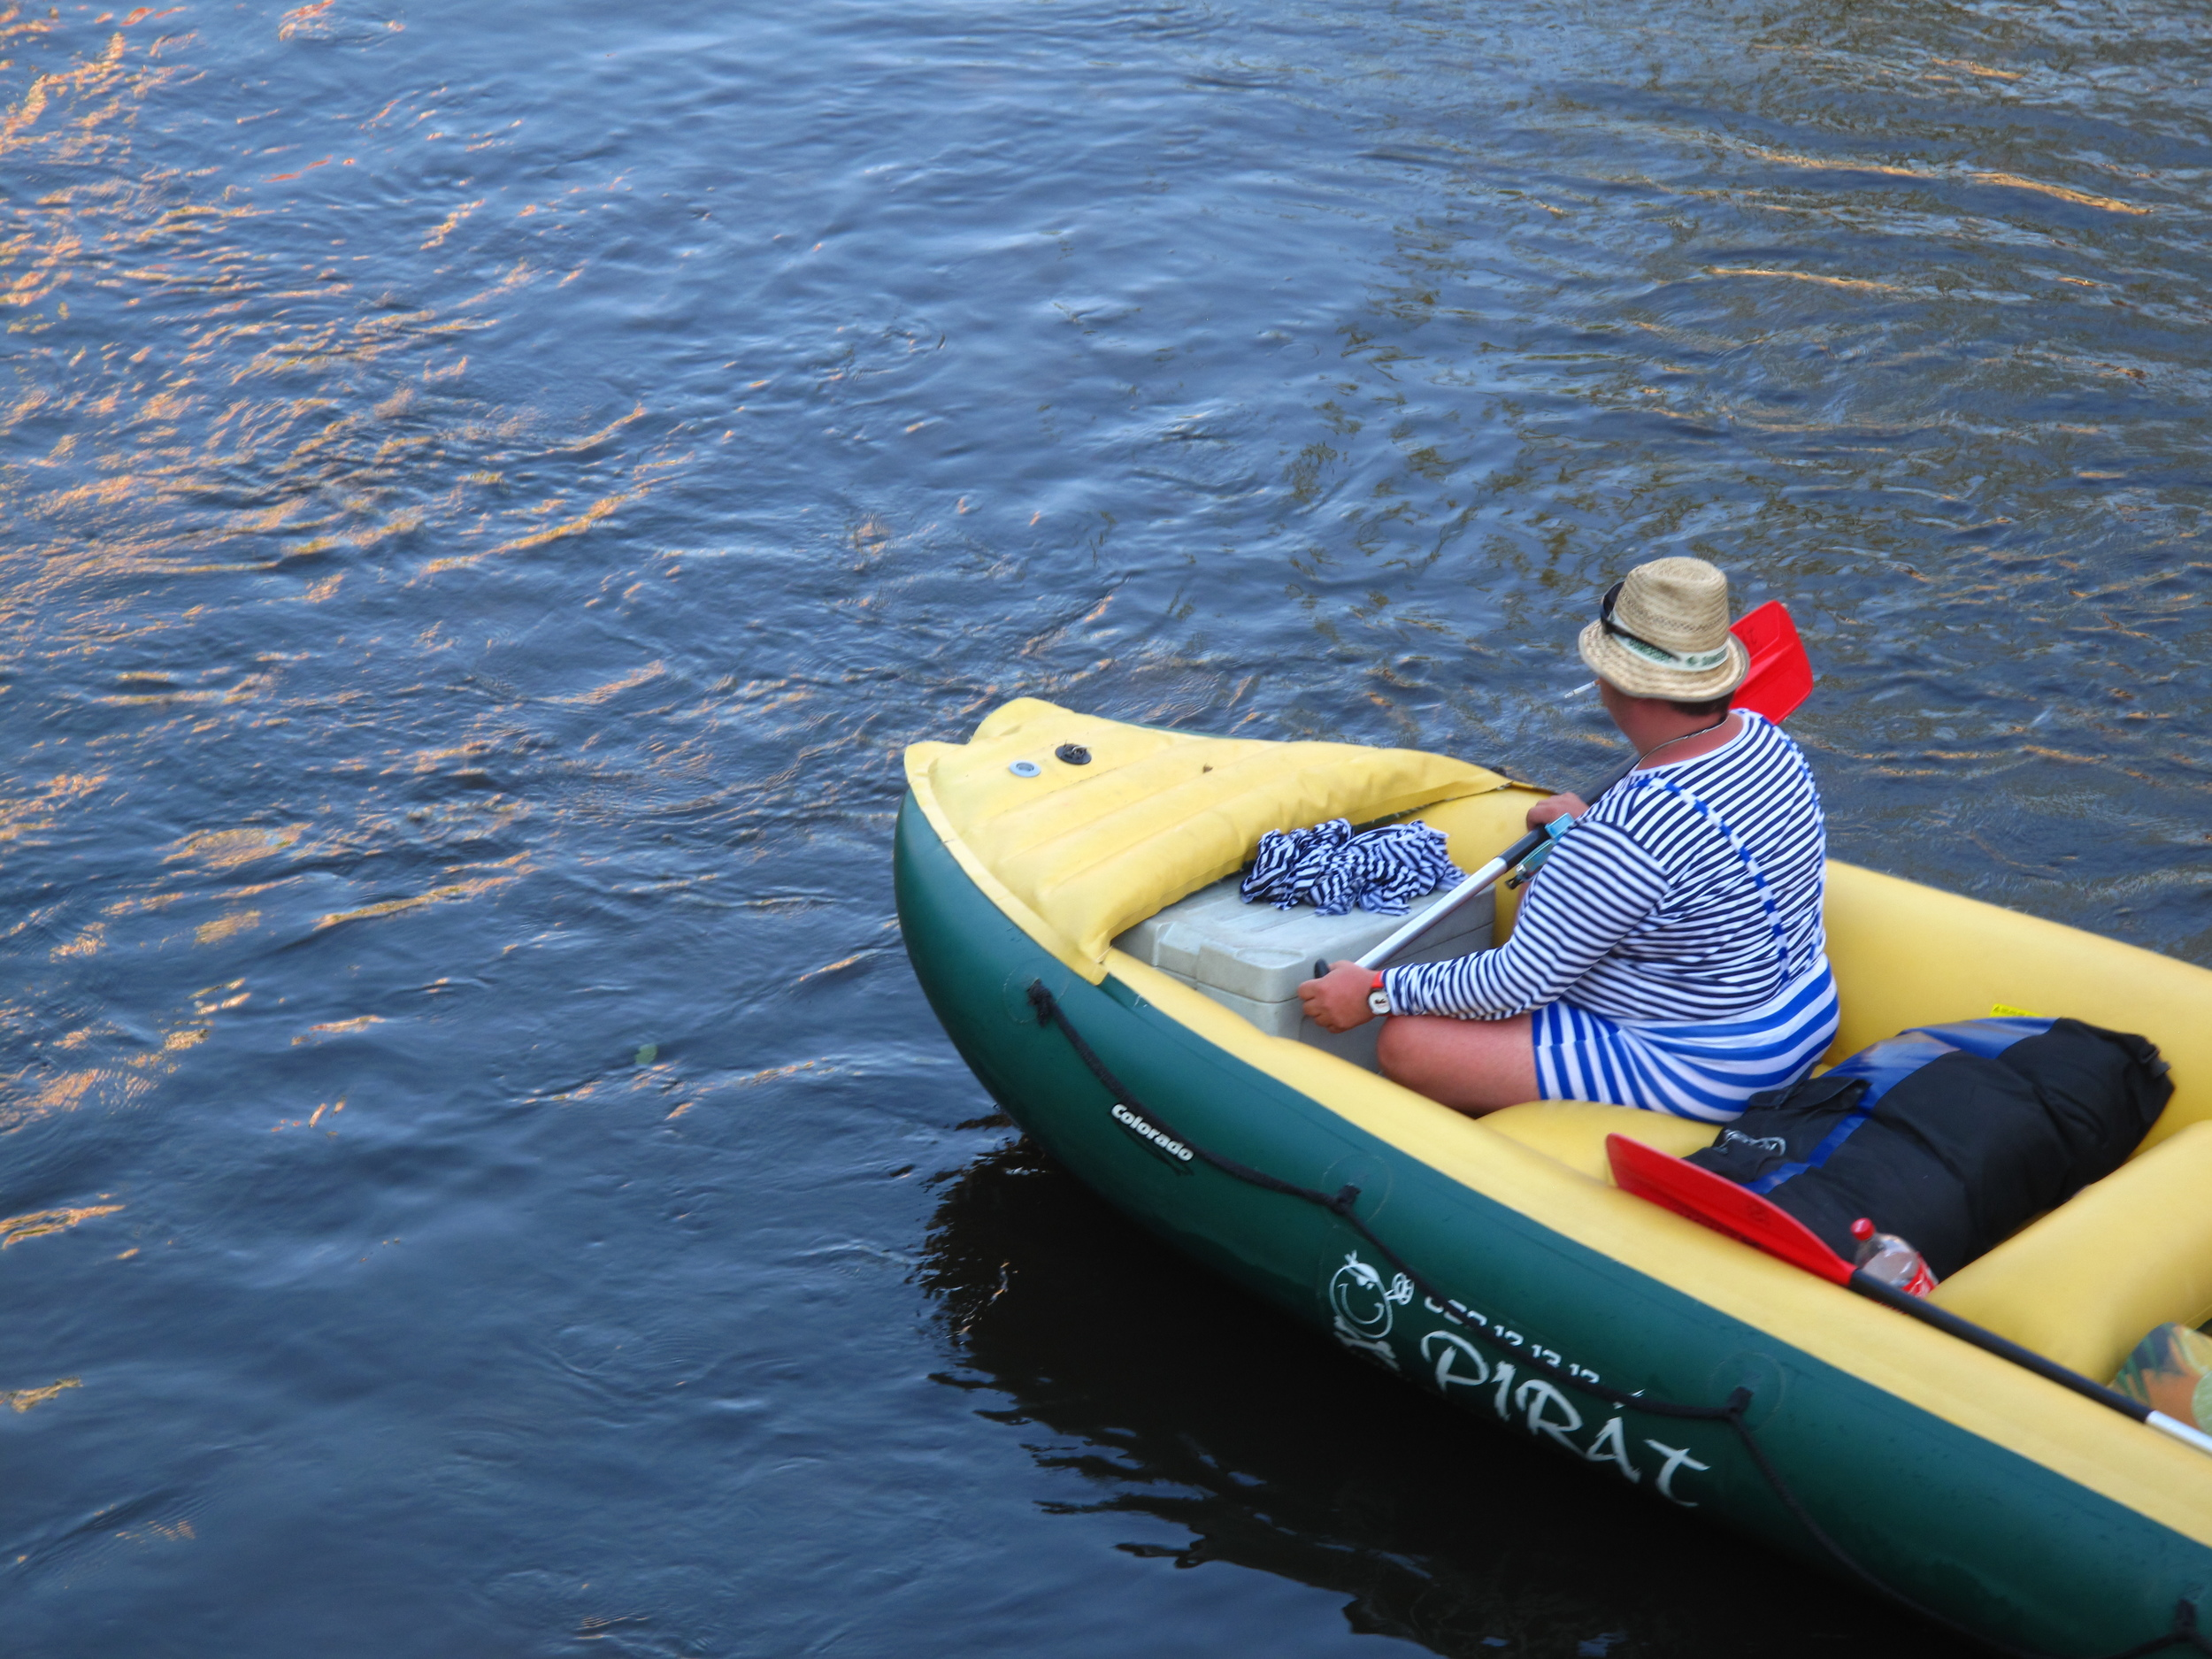 Funny Czech men in swimsuits canoeing and smoking